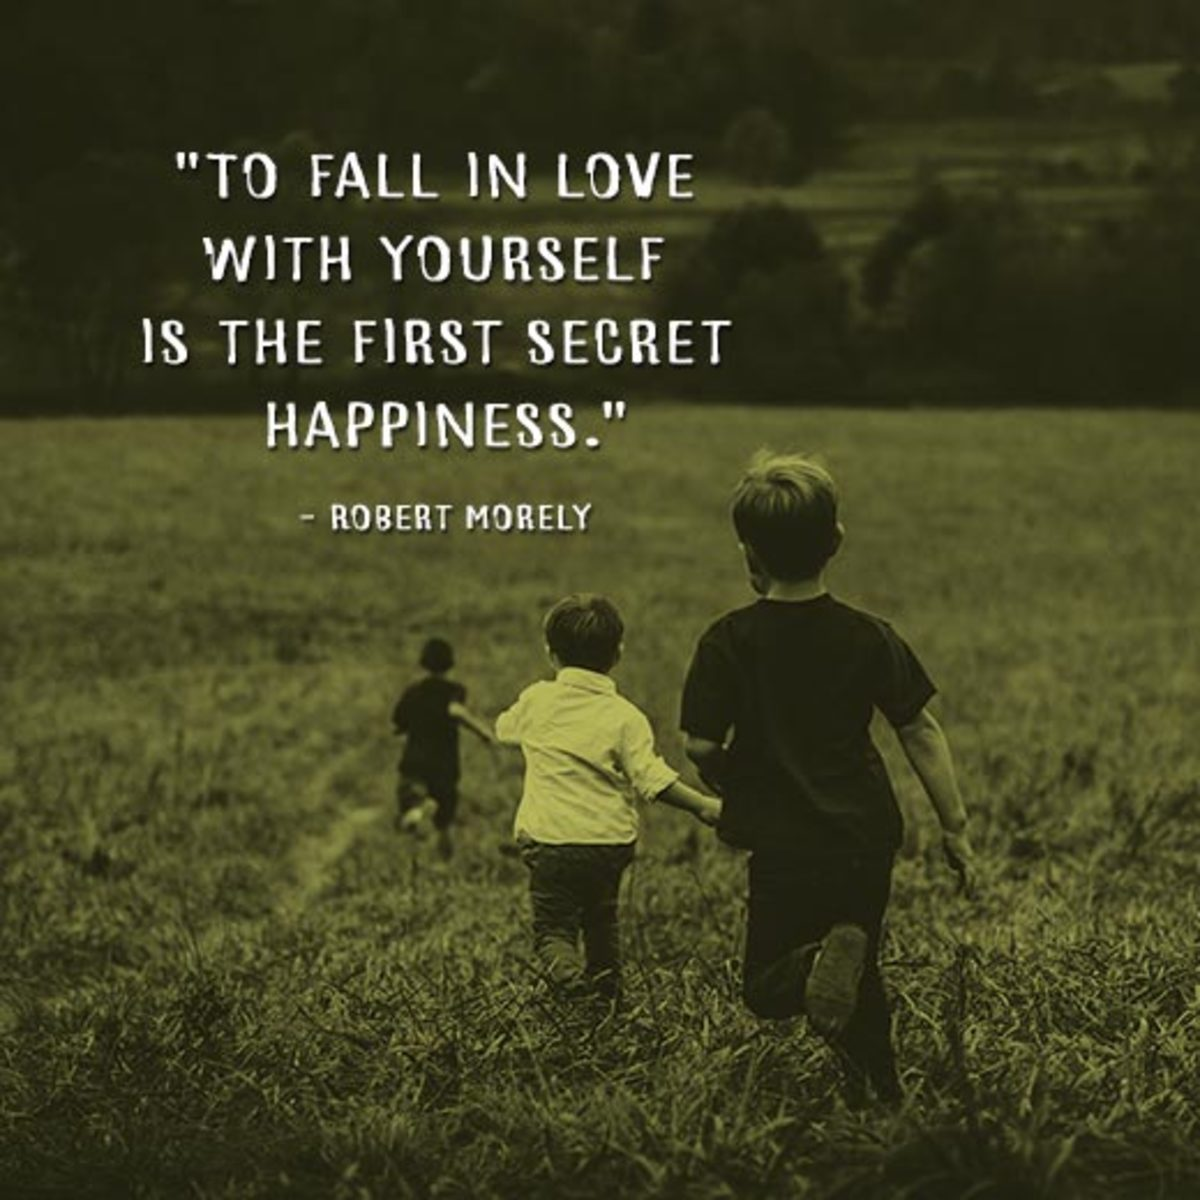 """To fall in love with yourself is the first secret to happiness."" ―Robert Morely"